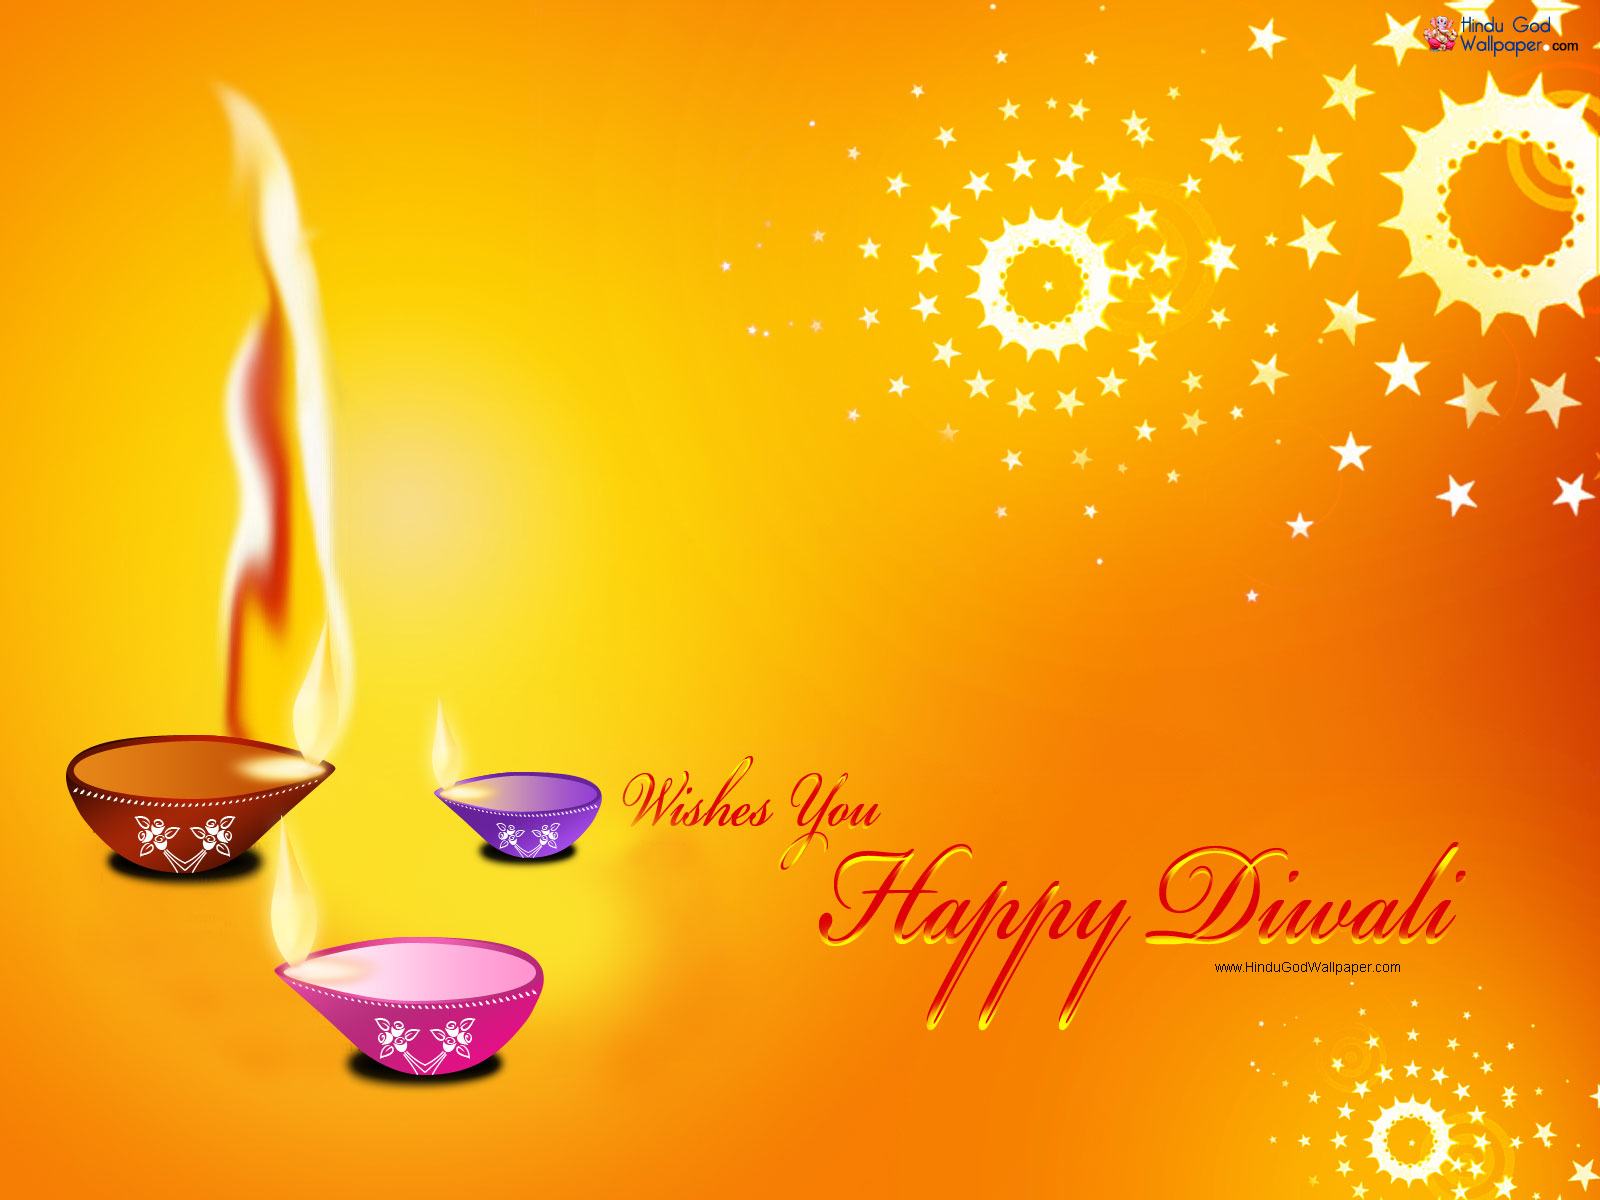 Happy diwali images pictures wallpaper photos free hd happy diwali images kristyandbryce Image collections